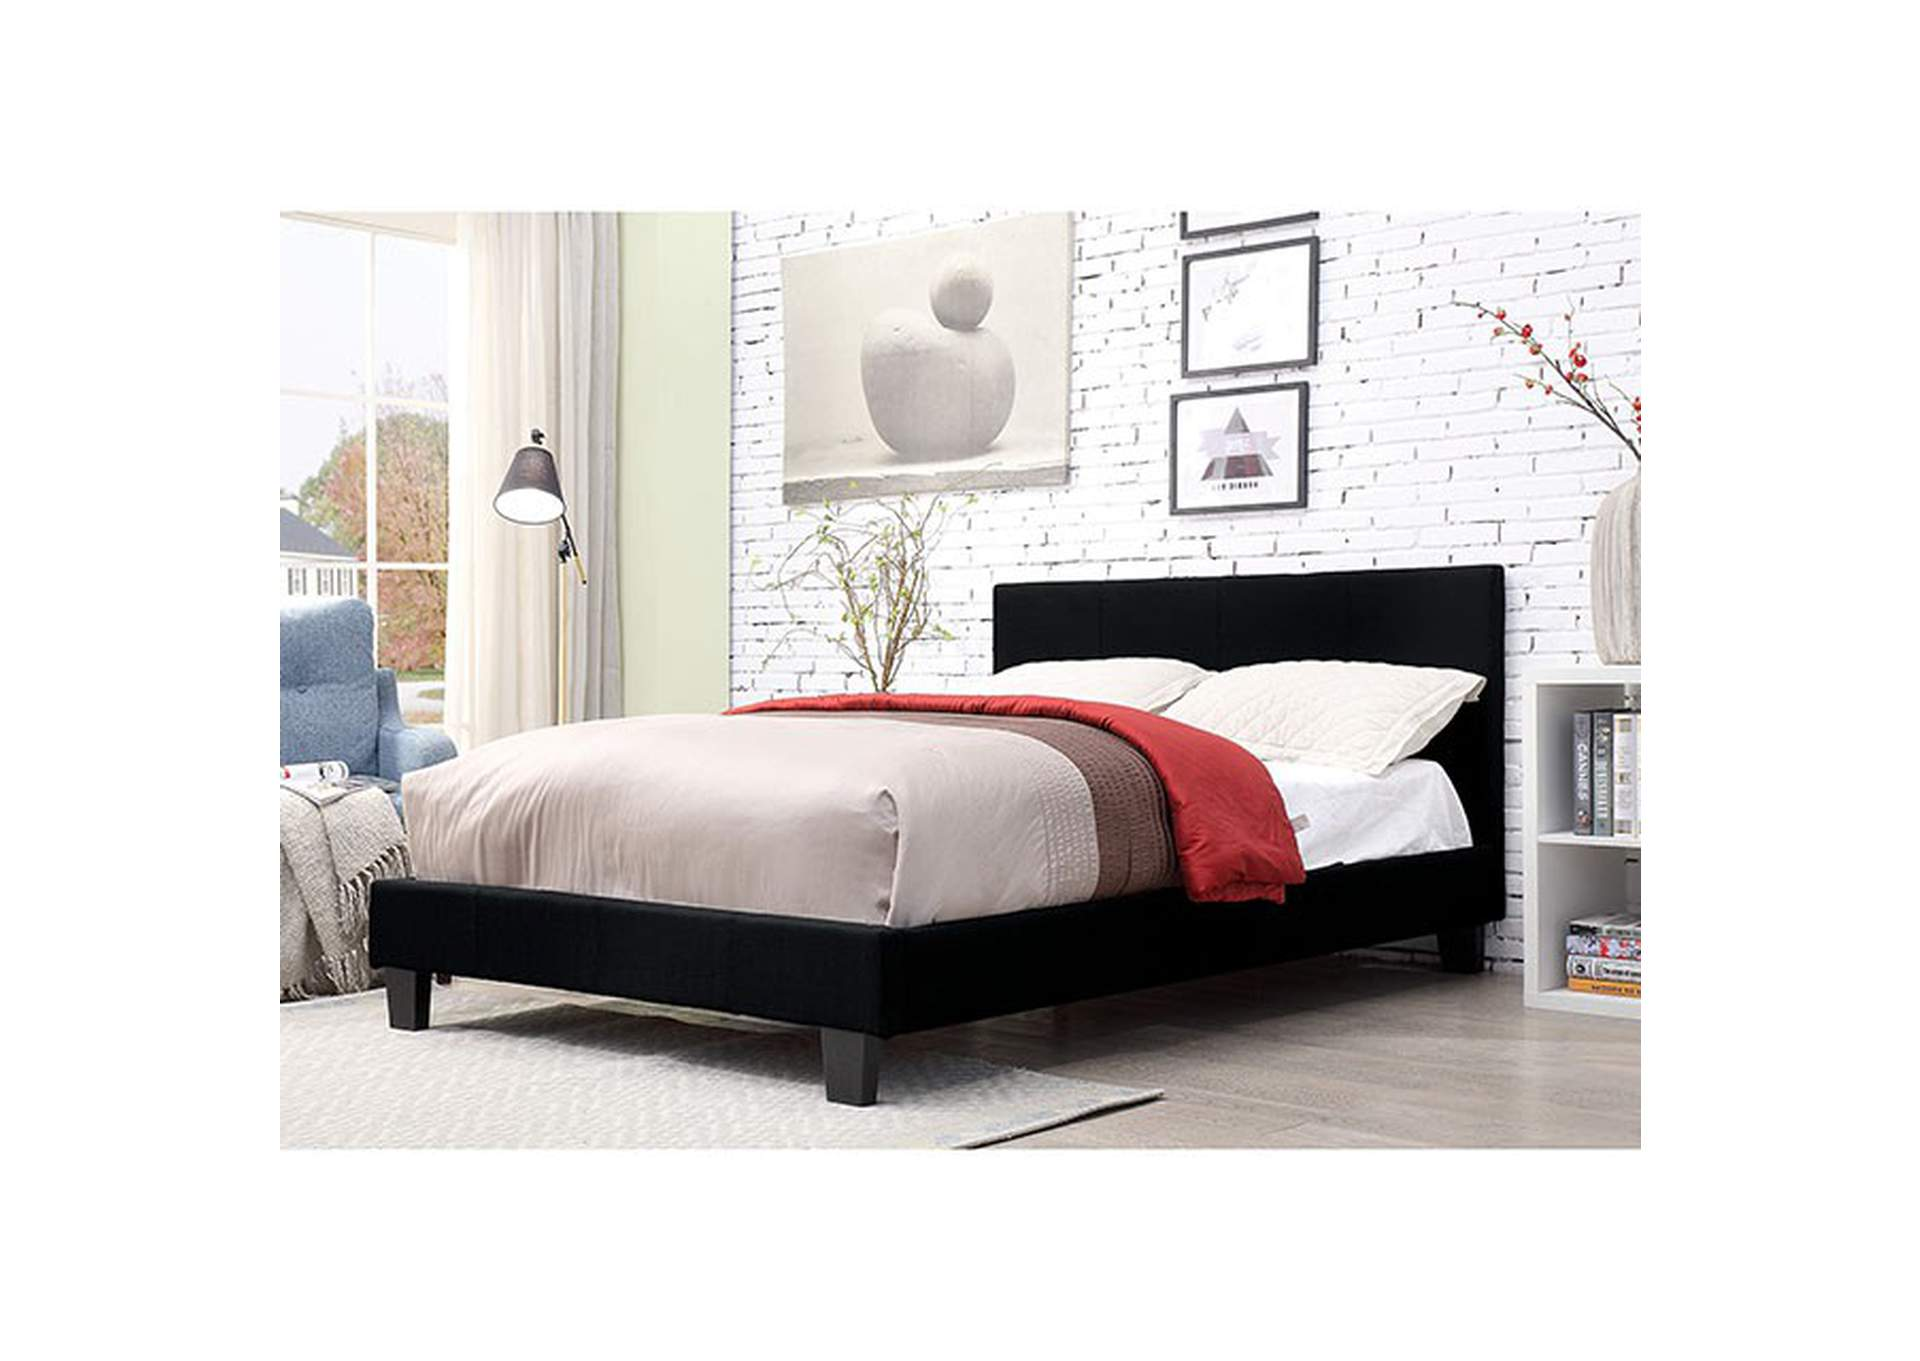 Sims Black California King Bed,Furniture of America